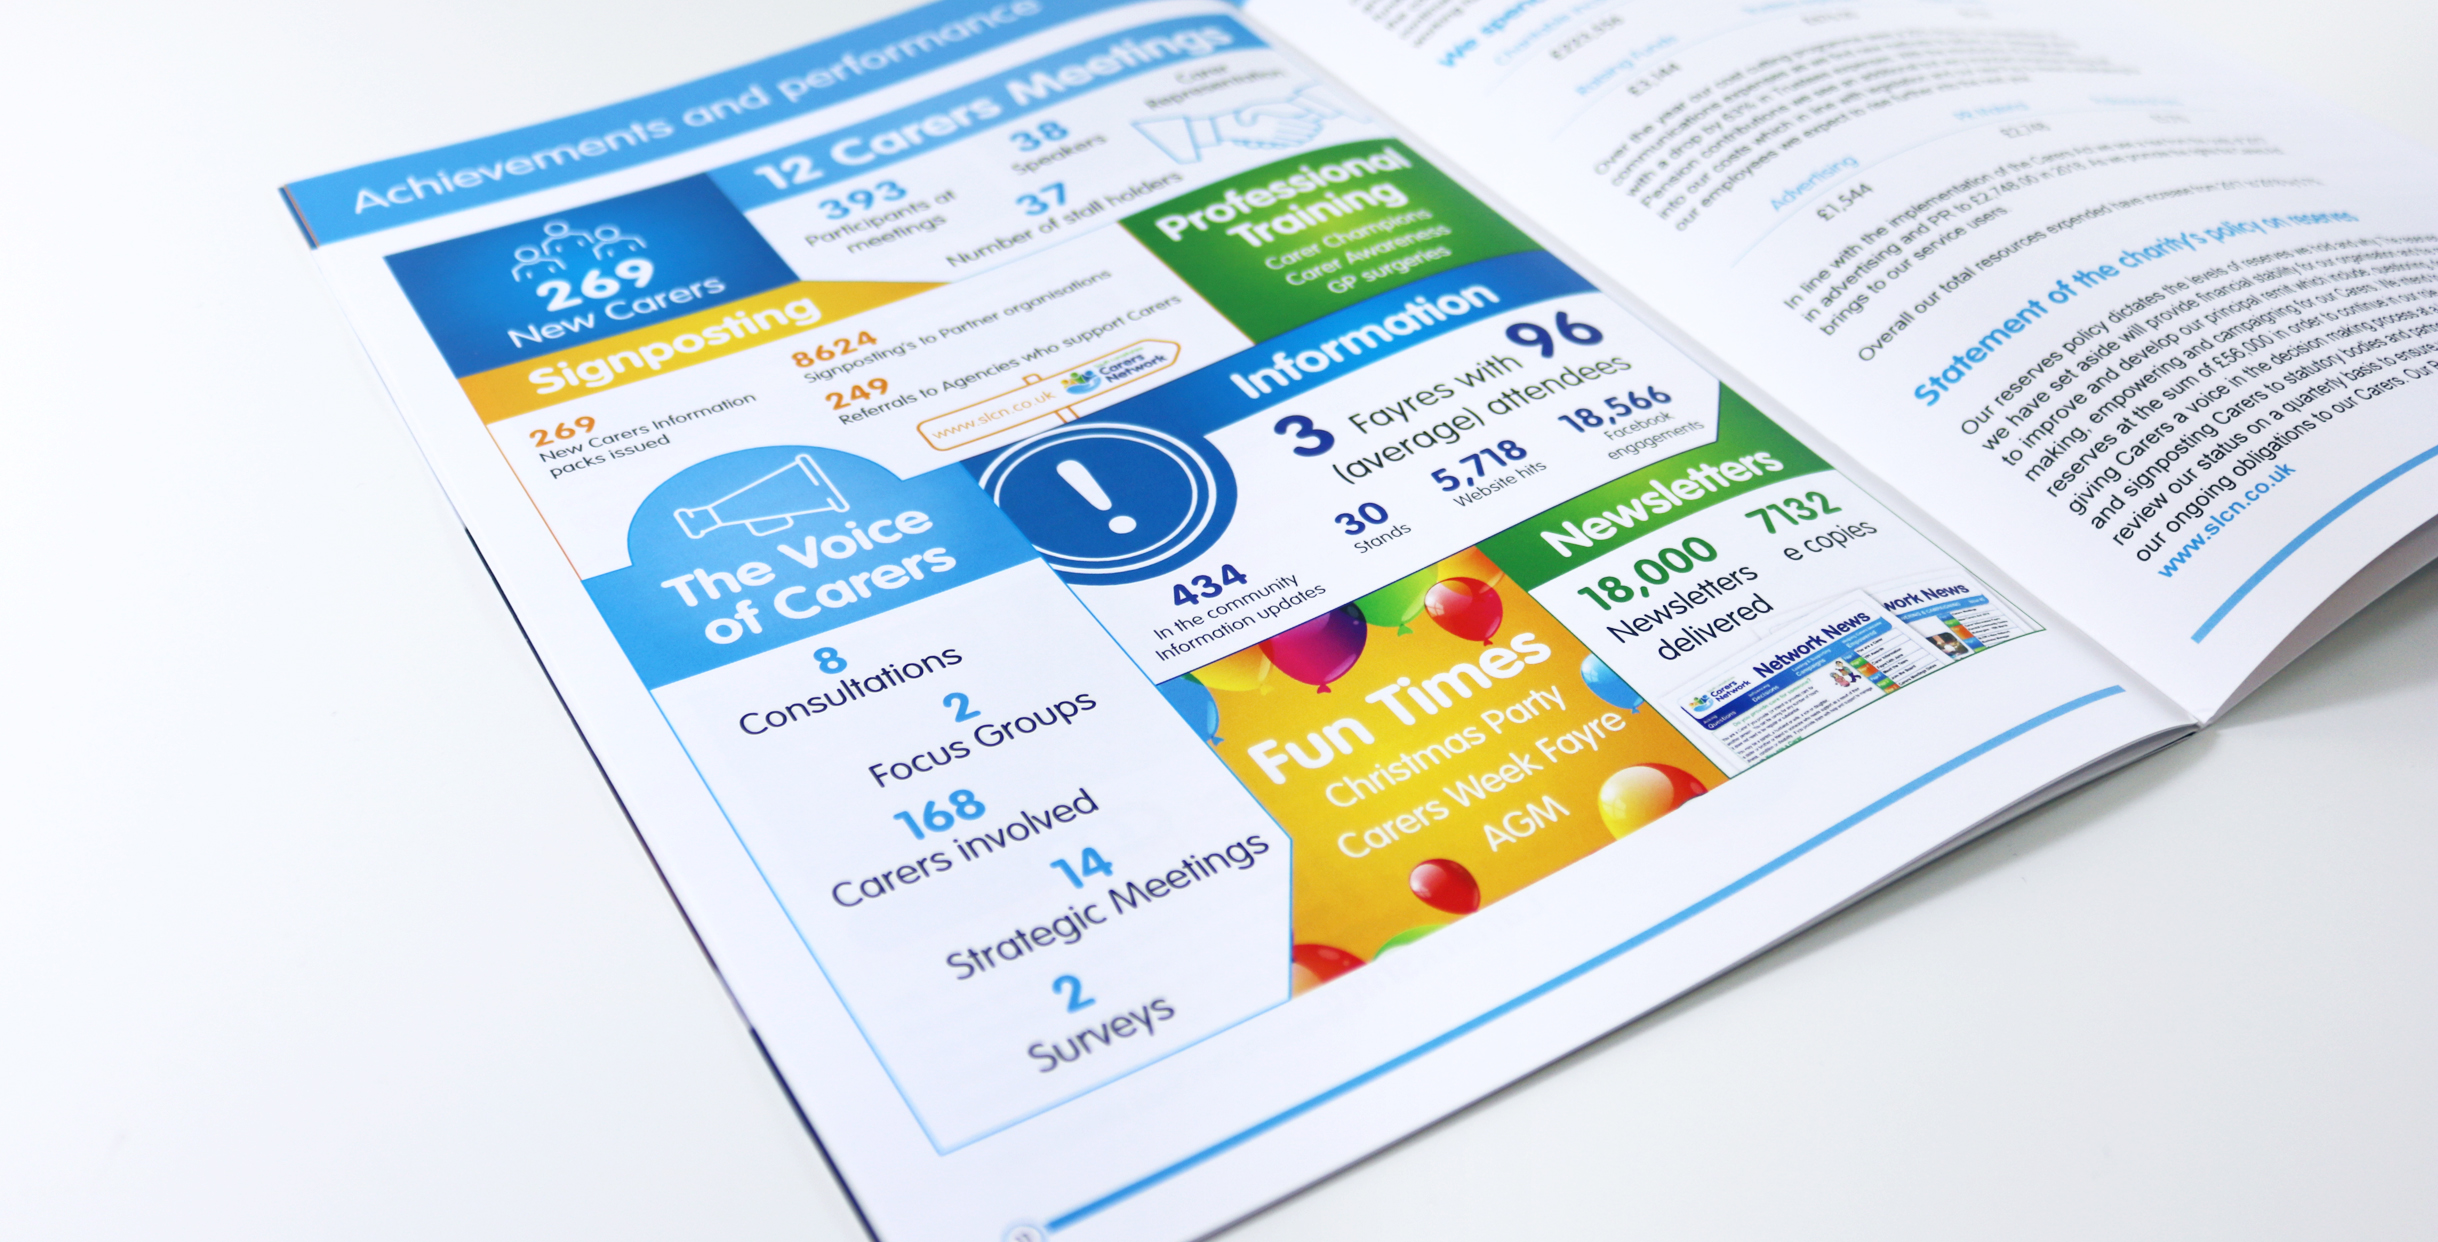 Inside pages of annual report for South Lanarkshire Carers Network. Information marketing material